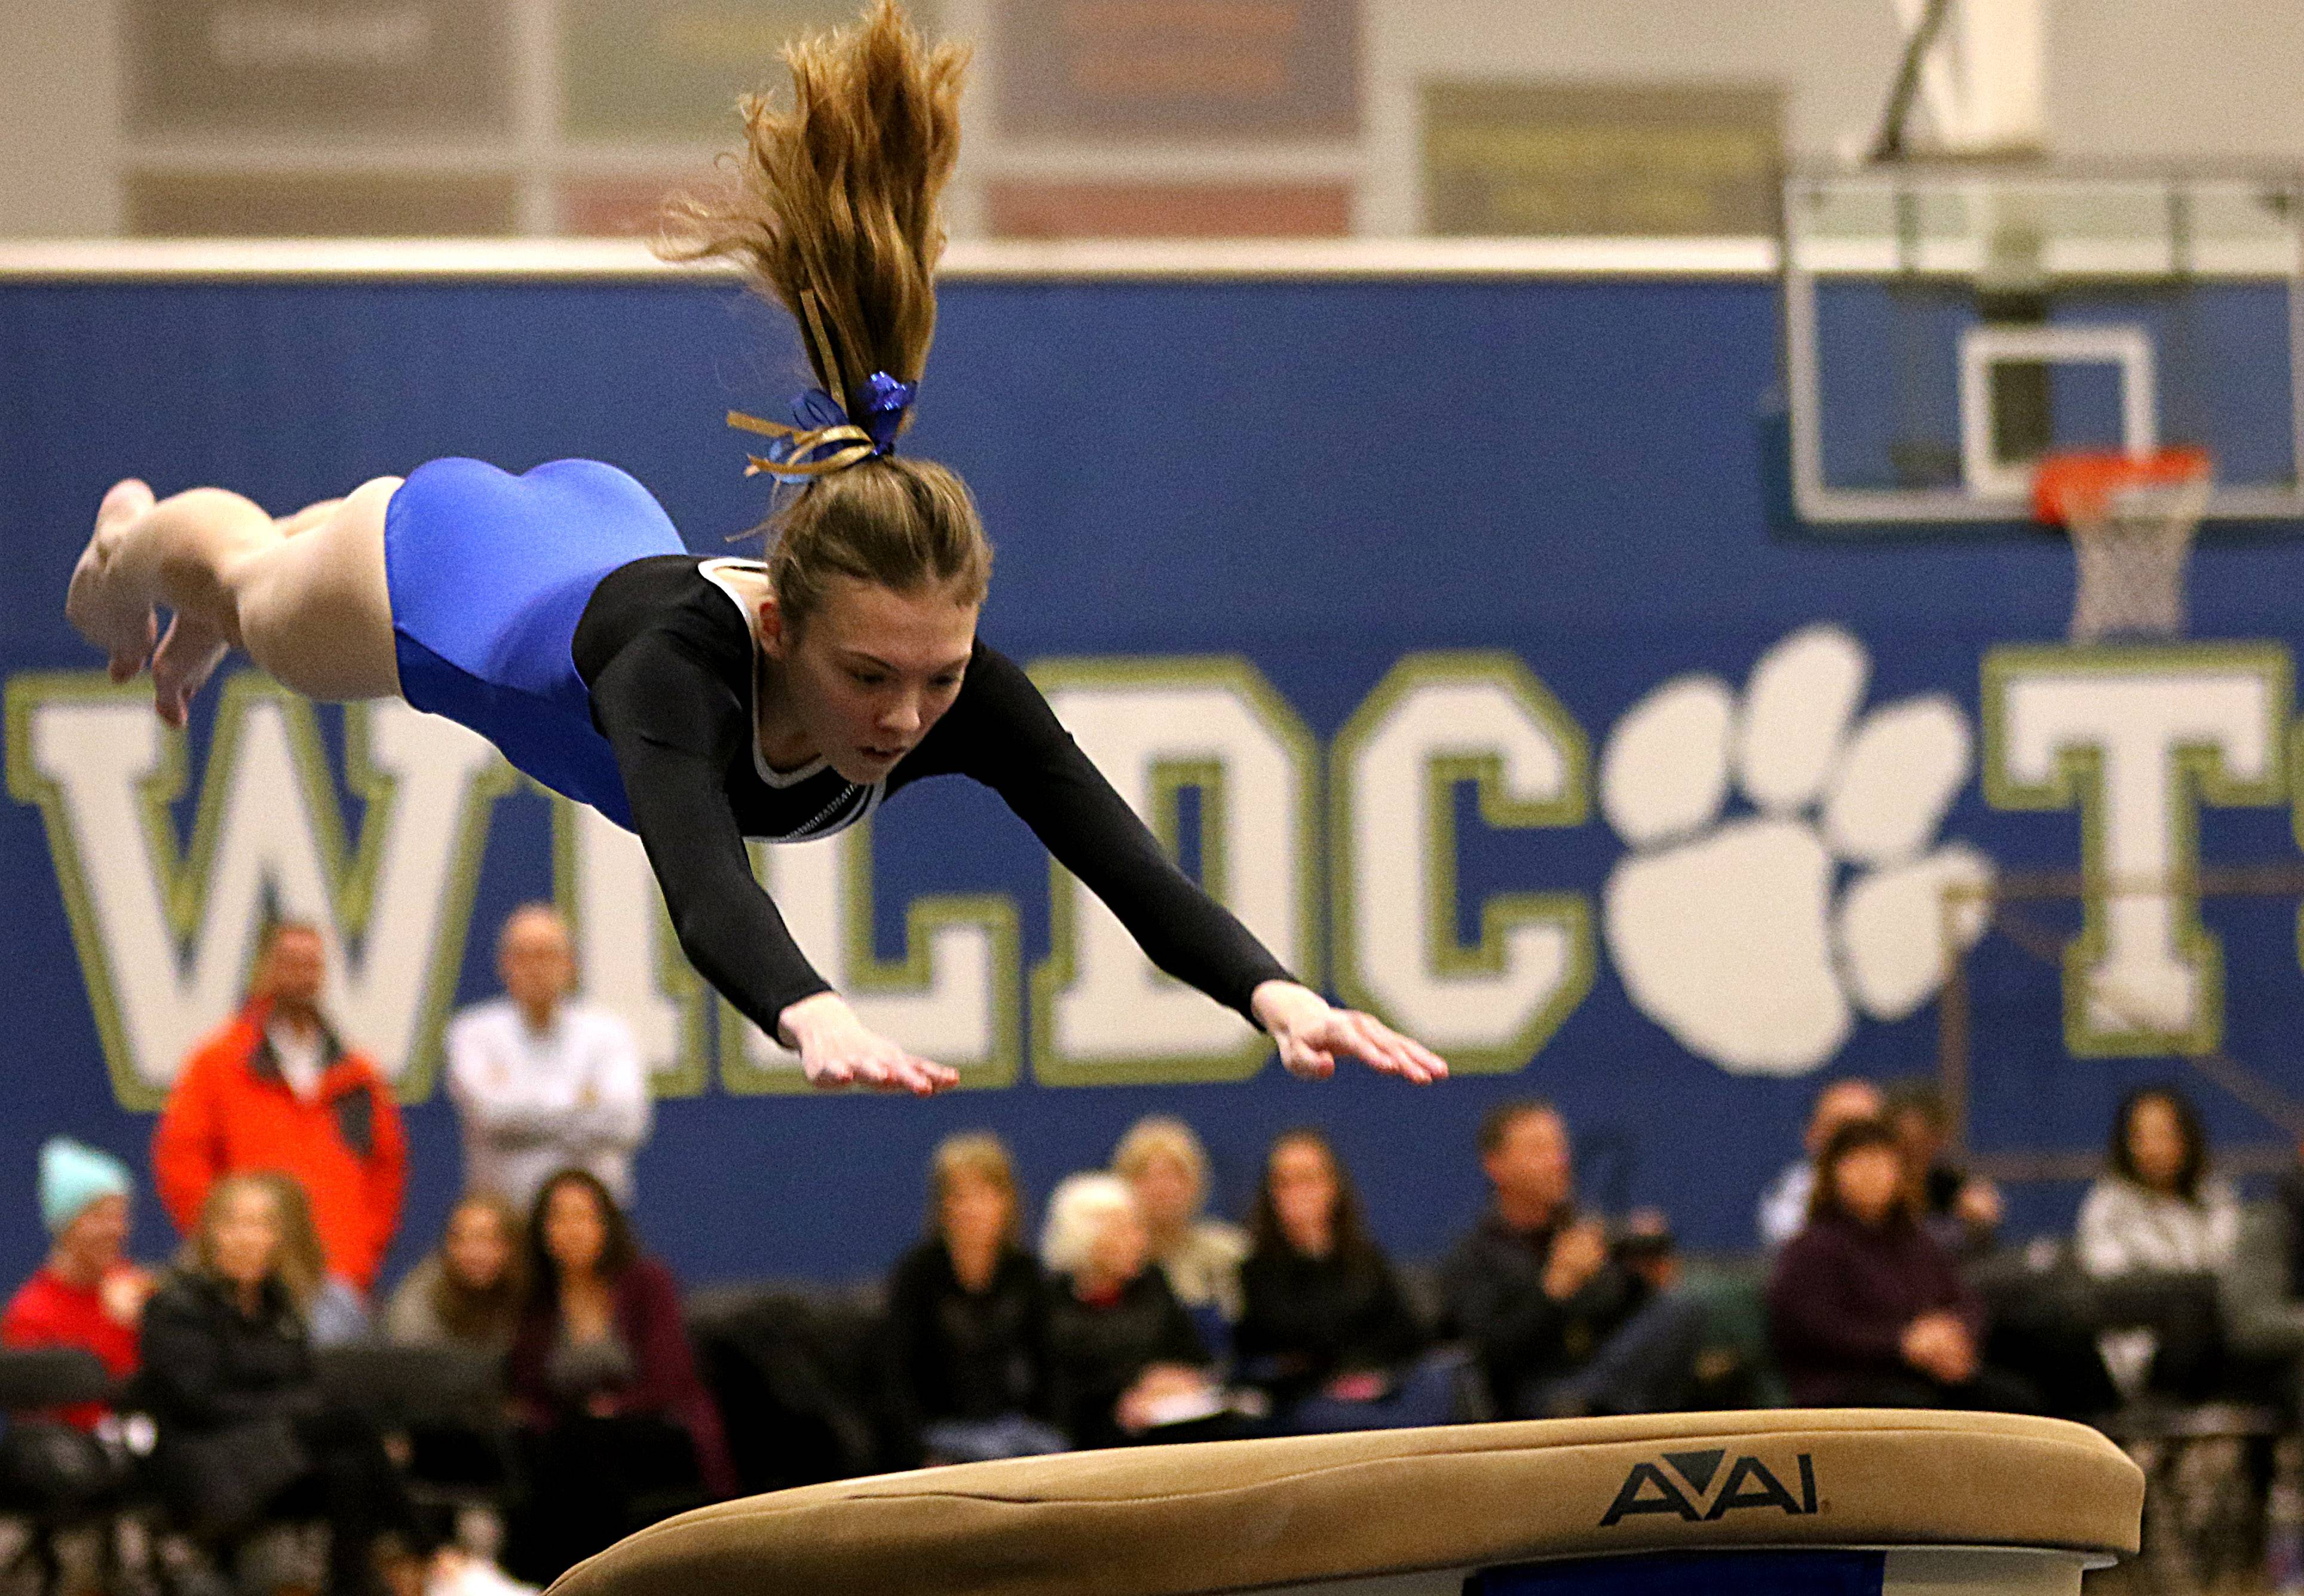 Wheeling's Emily Lucas performs on the vault during regional gymnastics action at Wheeling on Monday evening.